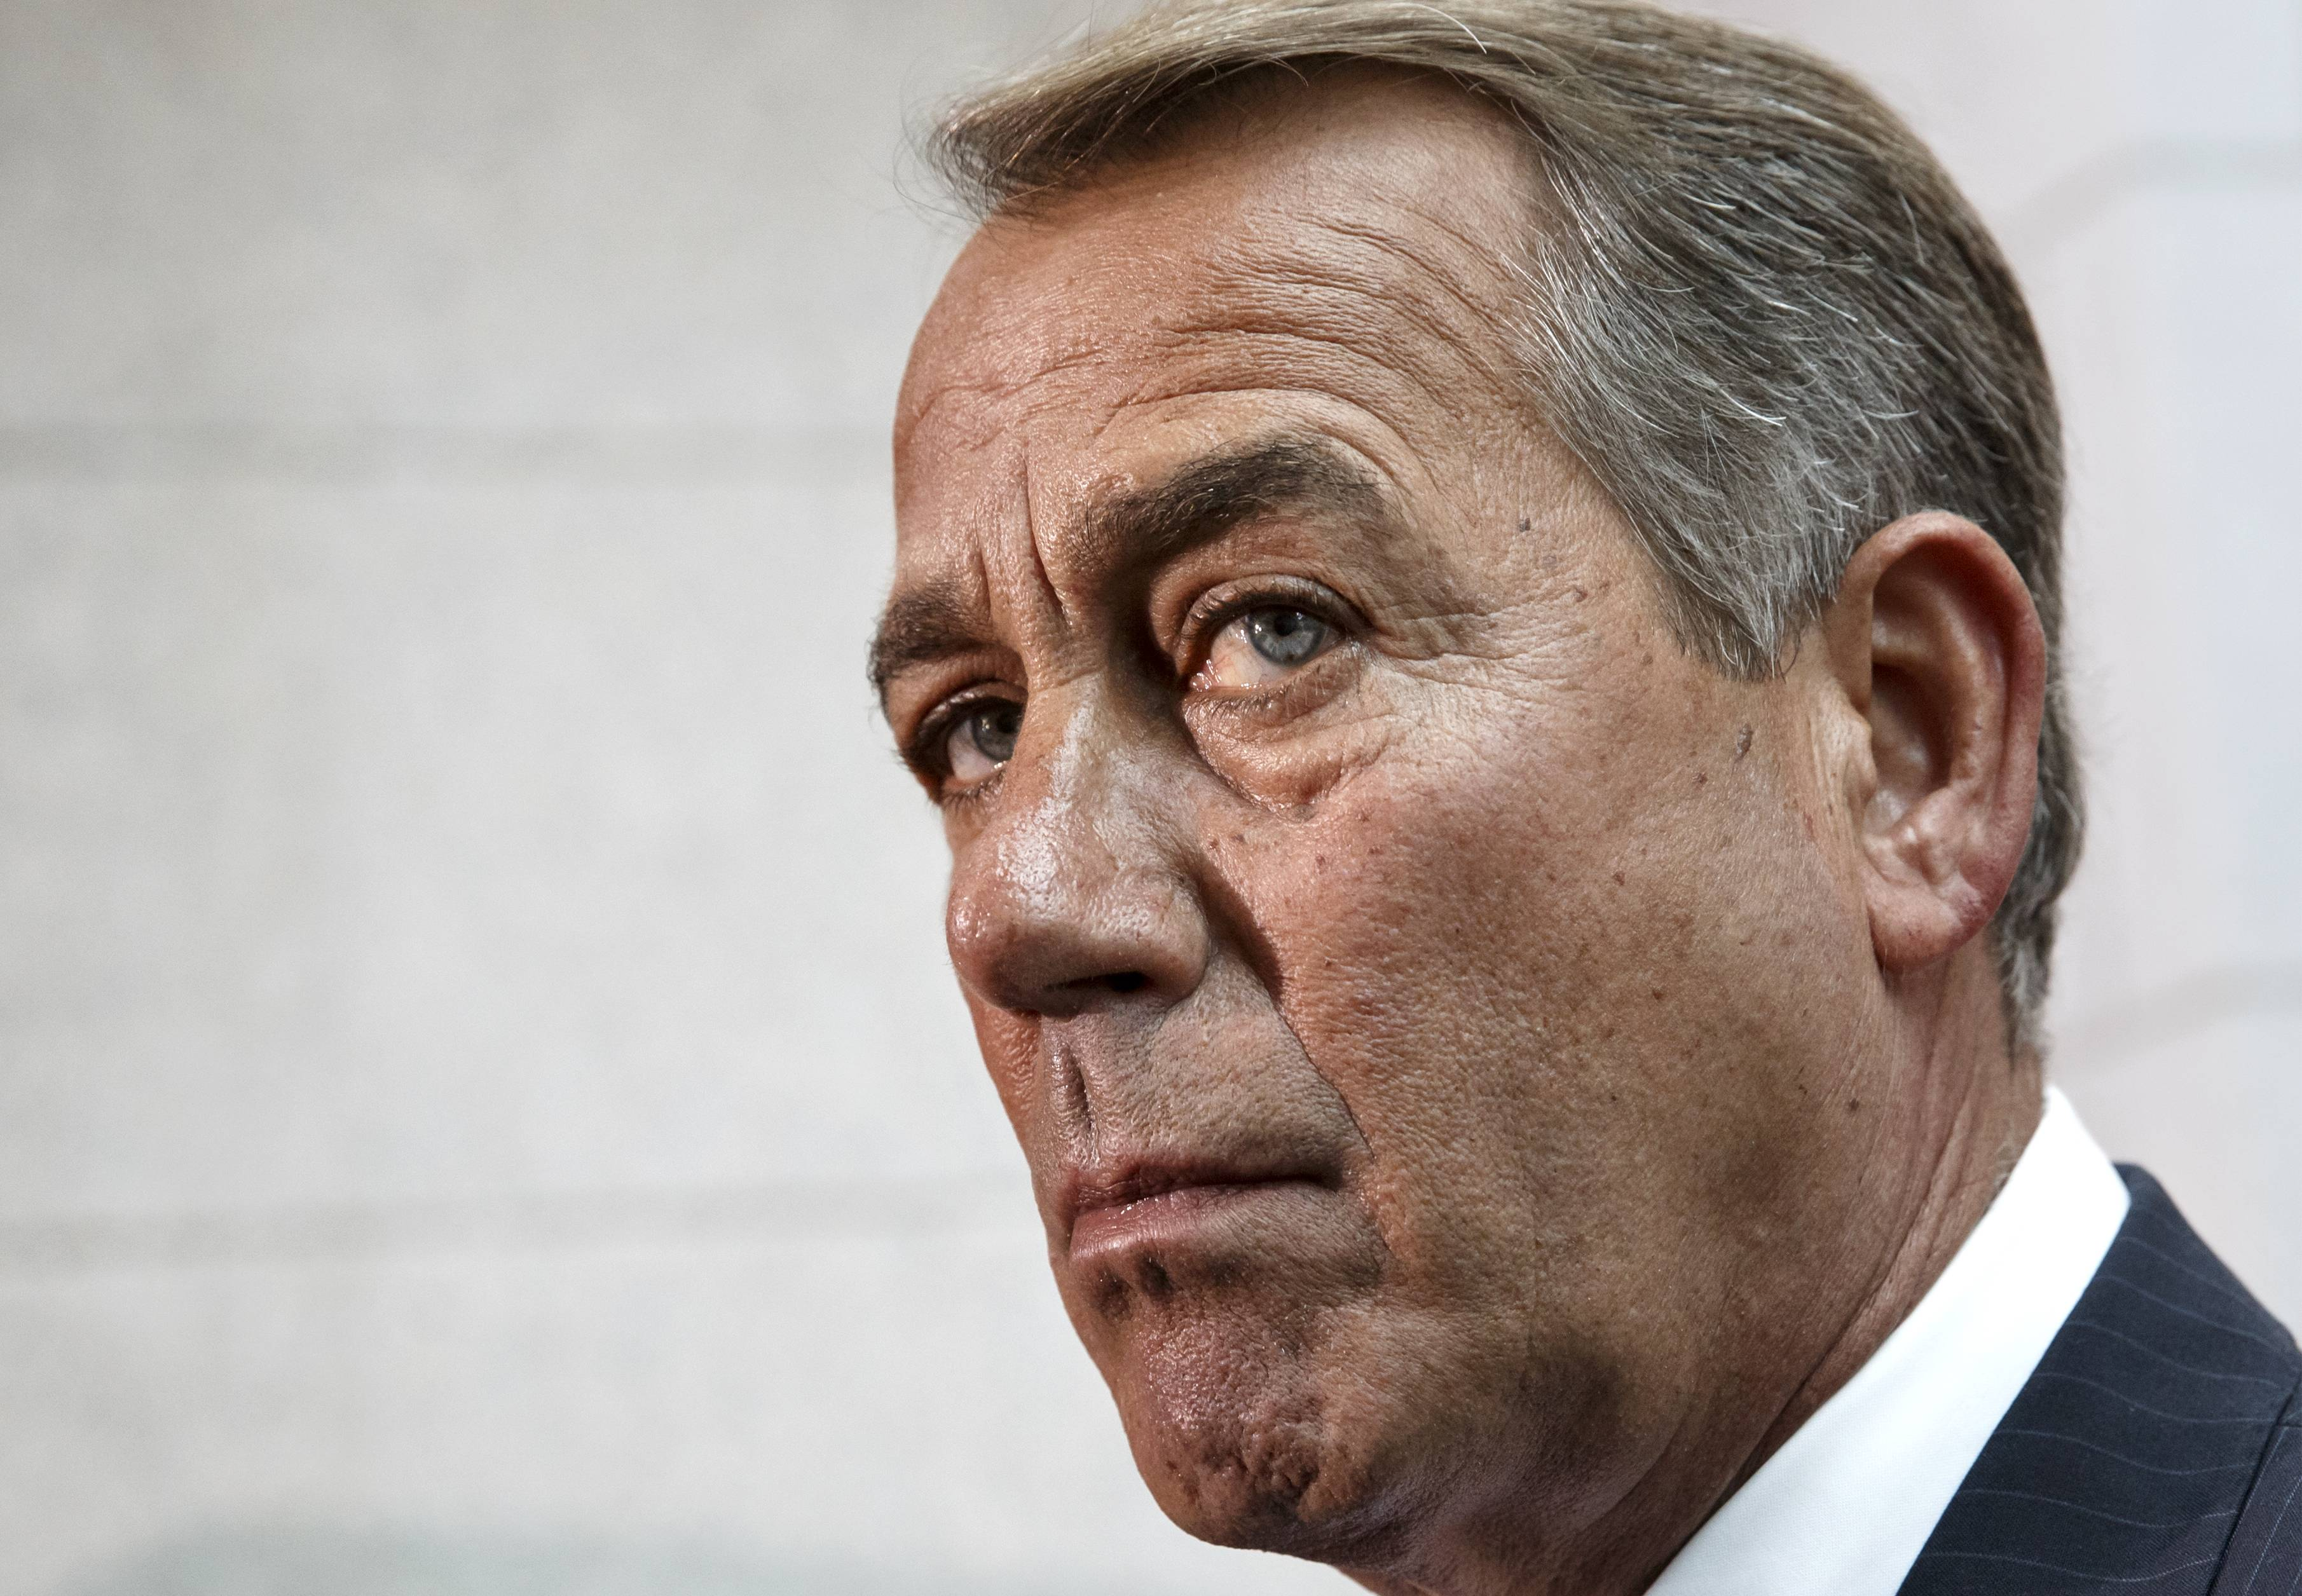 House Speaker John Boehner said Wednesday he opposed outreach to Iran because it sends the wrong message to American allies in the Middle East given that the Islamic republic is alleged to have sponsored terrorism in the region.